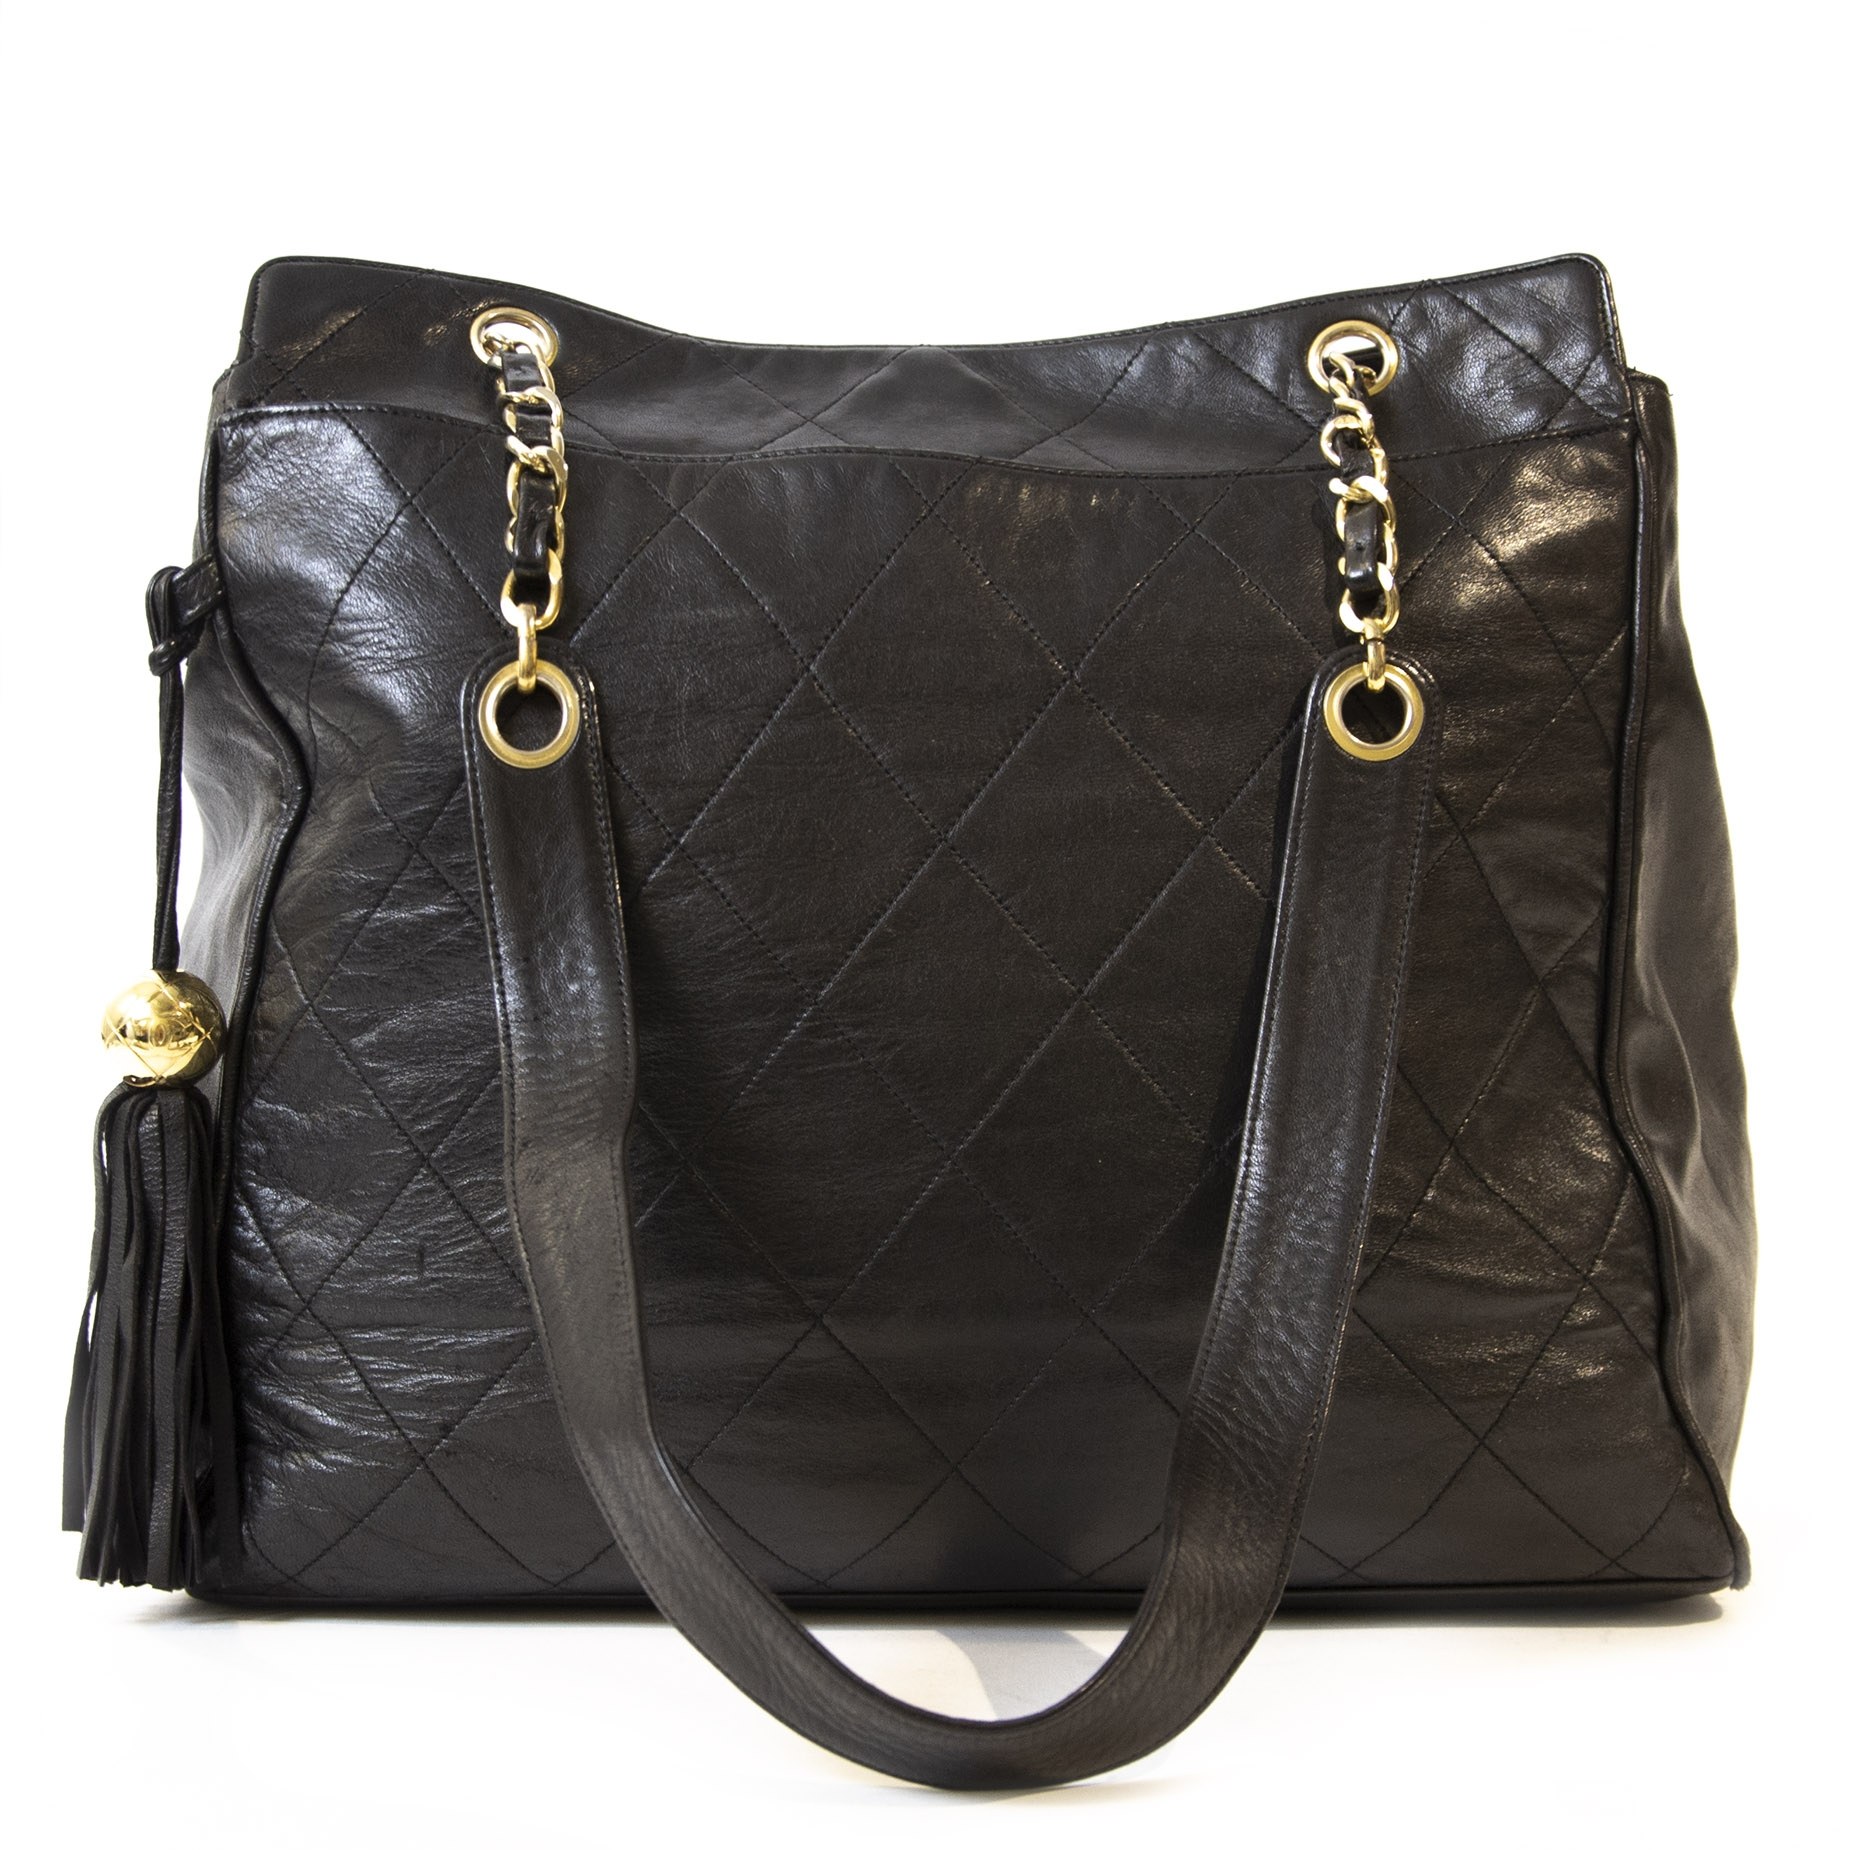 Chanel Vintage Quilted Black Tote Bag